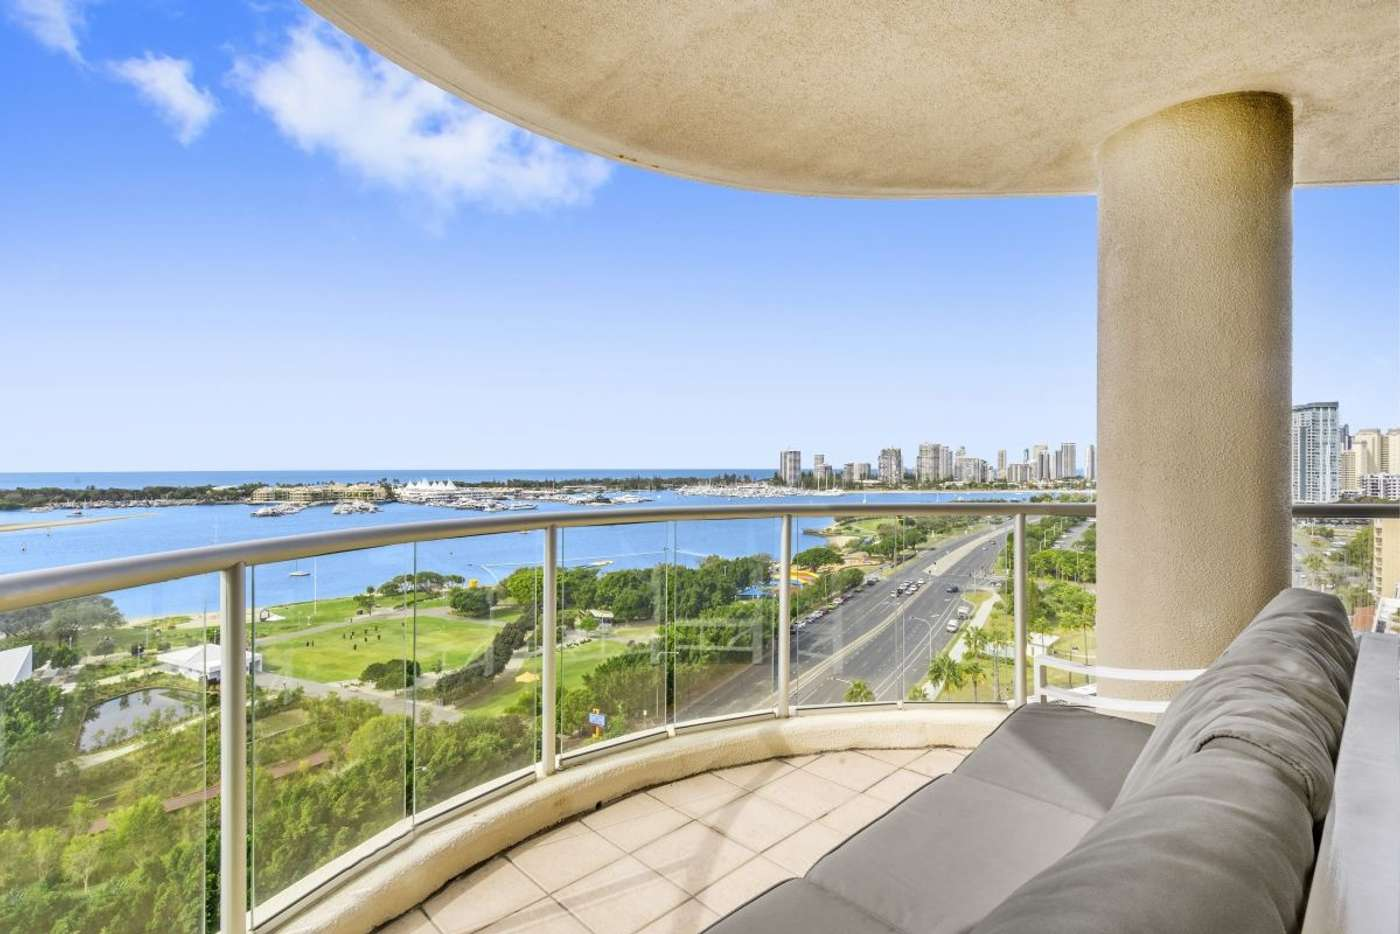 Fifth view of Homely apartment listing, 1301/50 Marine Parade, Southport QLD 4215